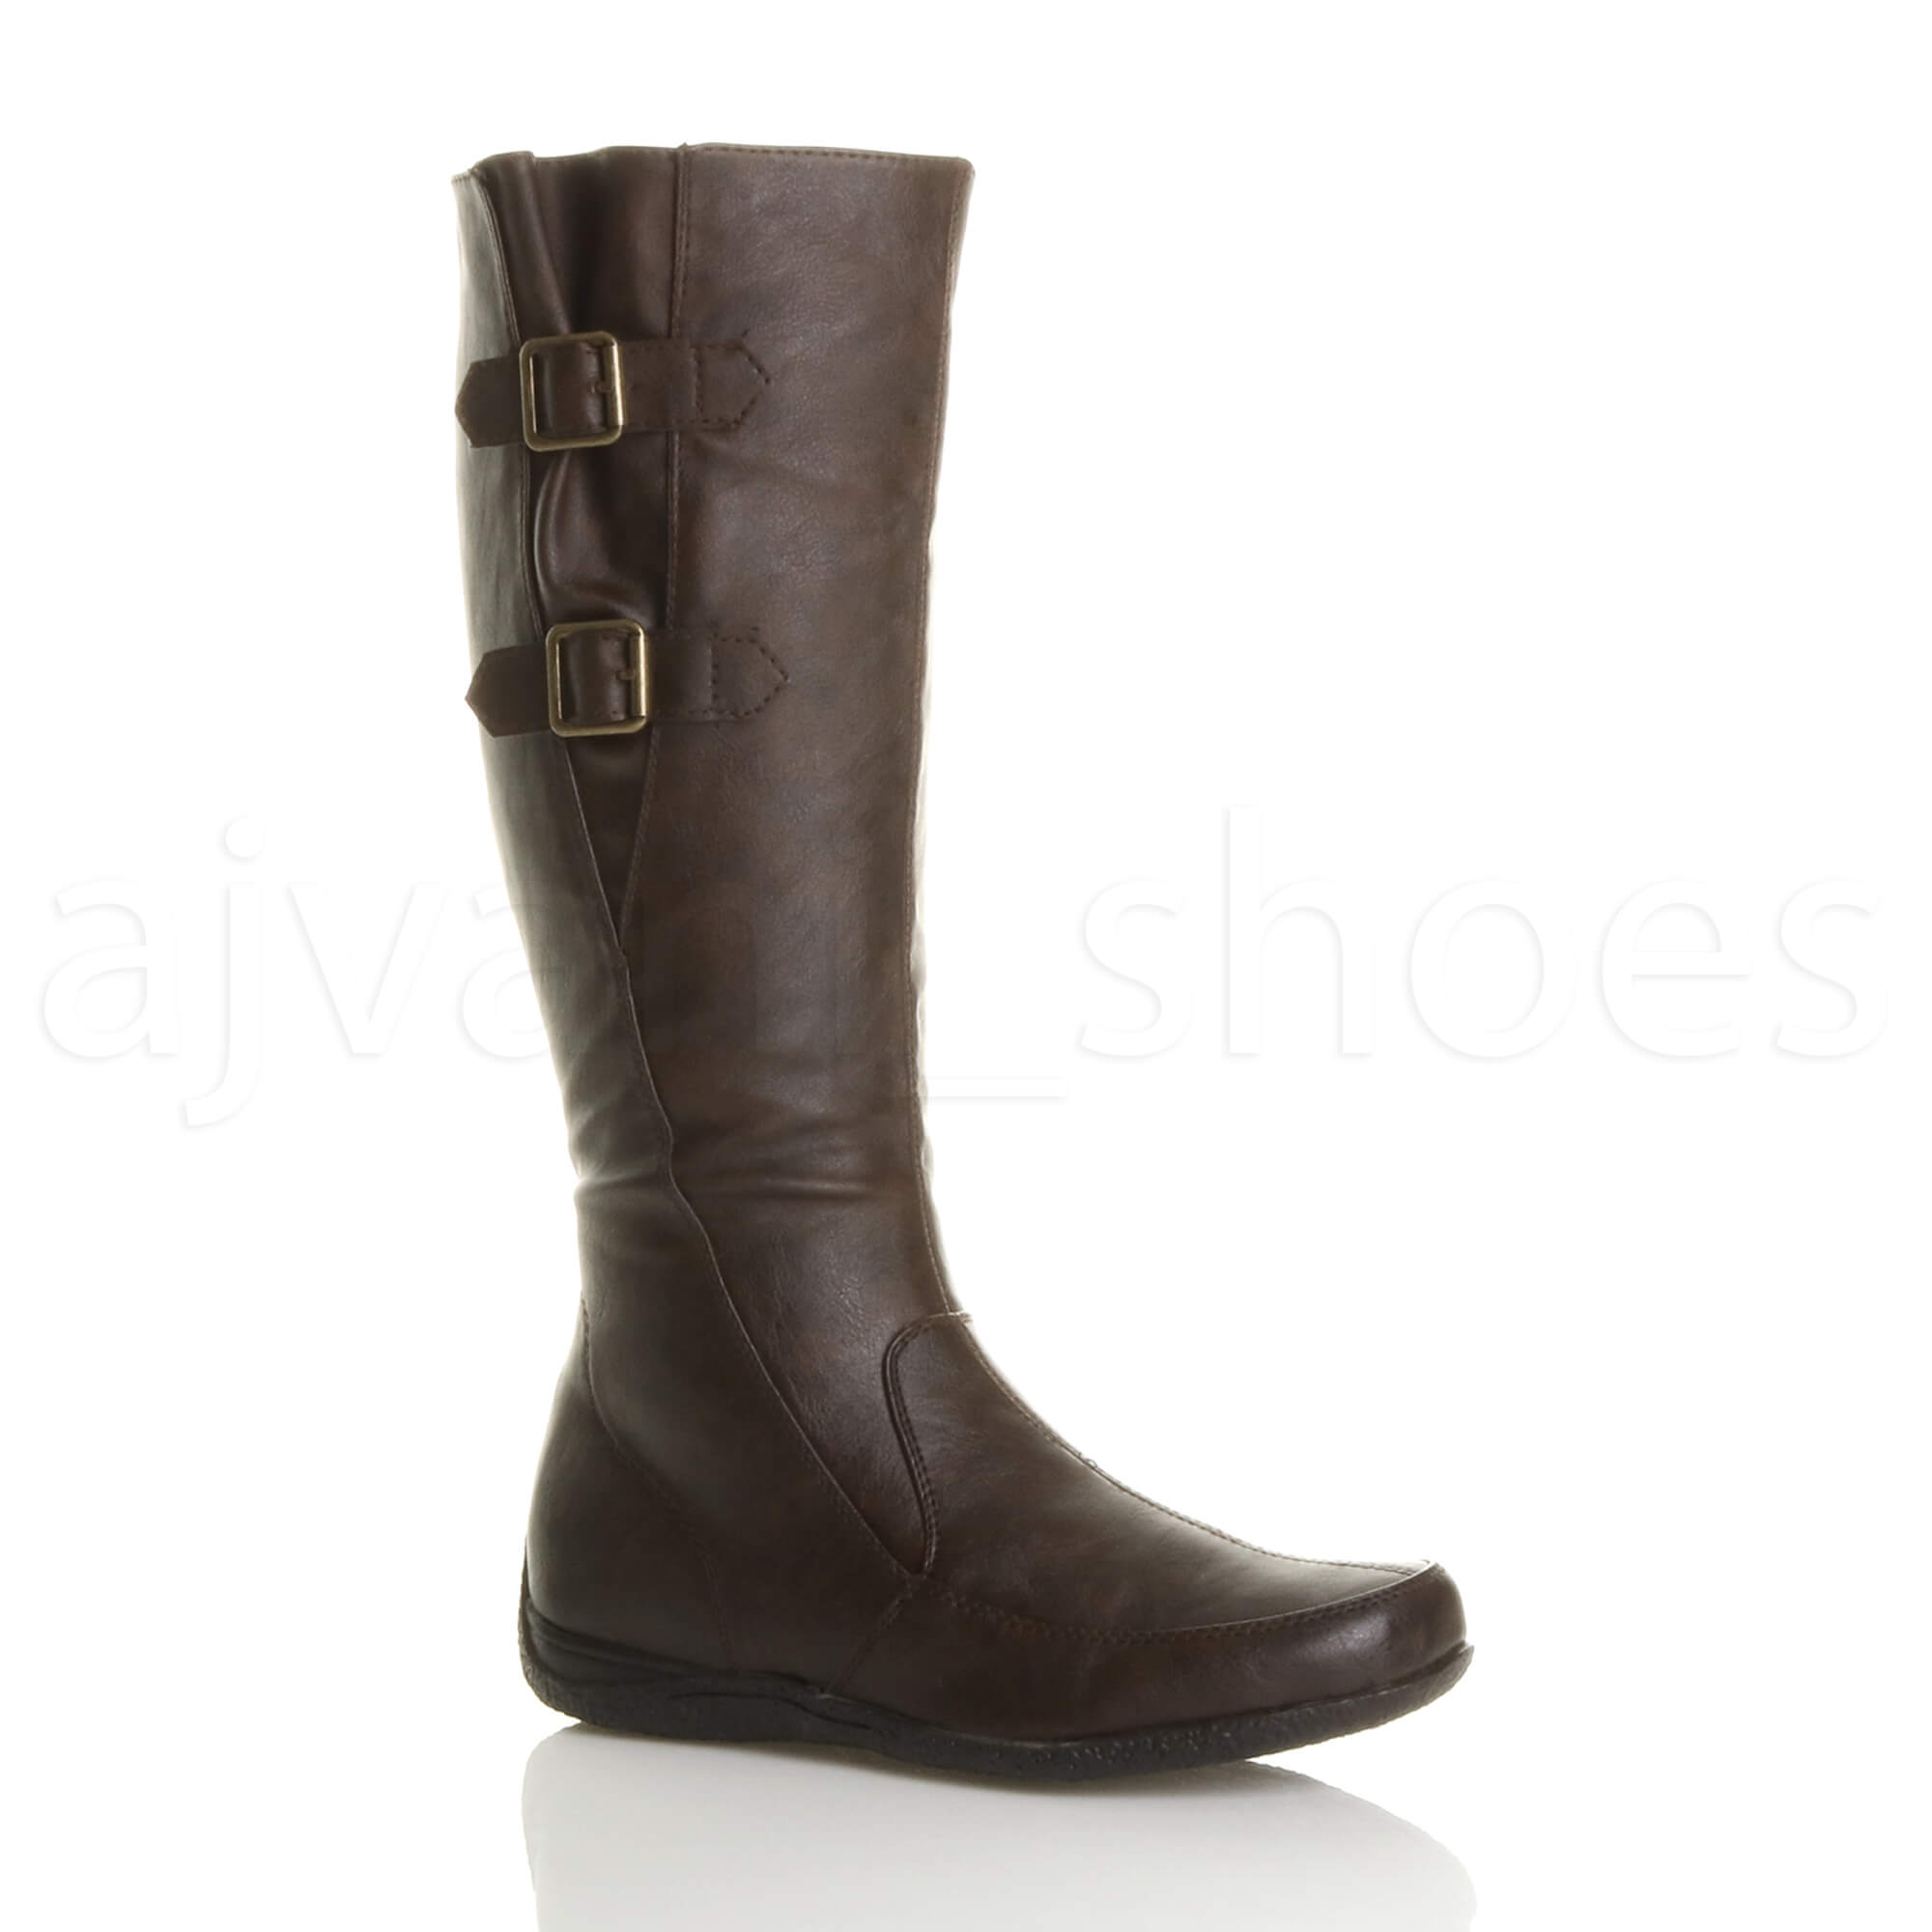 WOMENS-LADIES-LOW-HEEL-CONCEALED-WEDGE-WINTER-BUCKLE-STRETCH-ZIP-CALF-BOOTS-SIZE